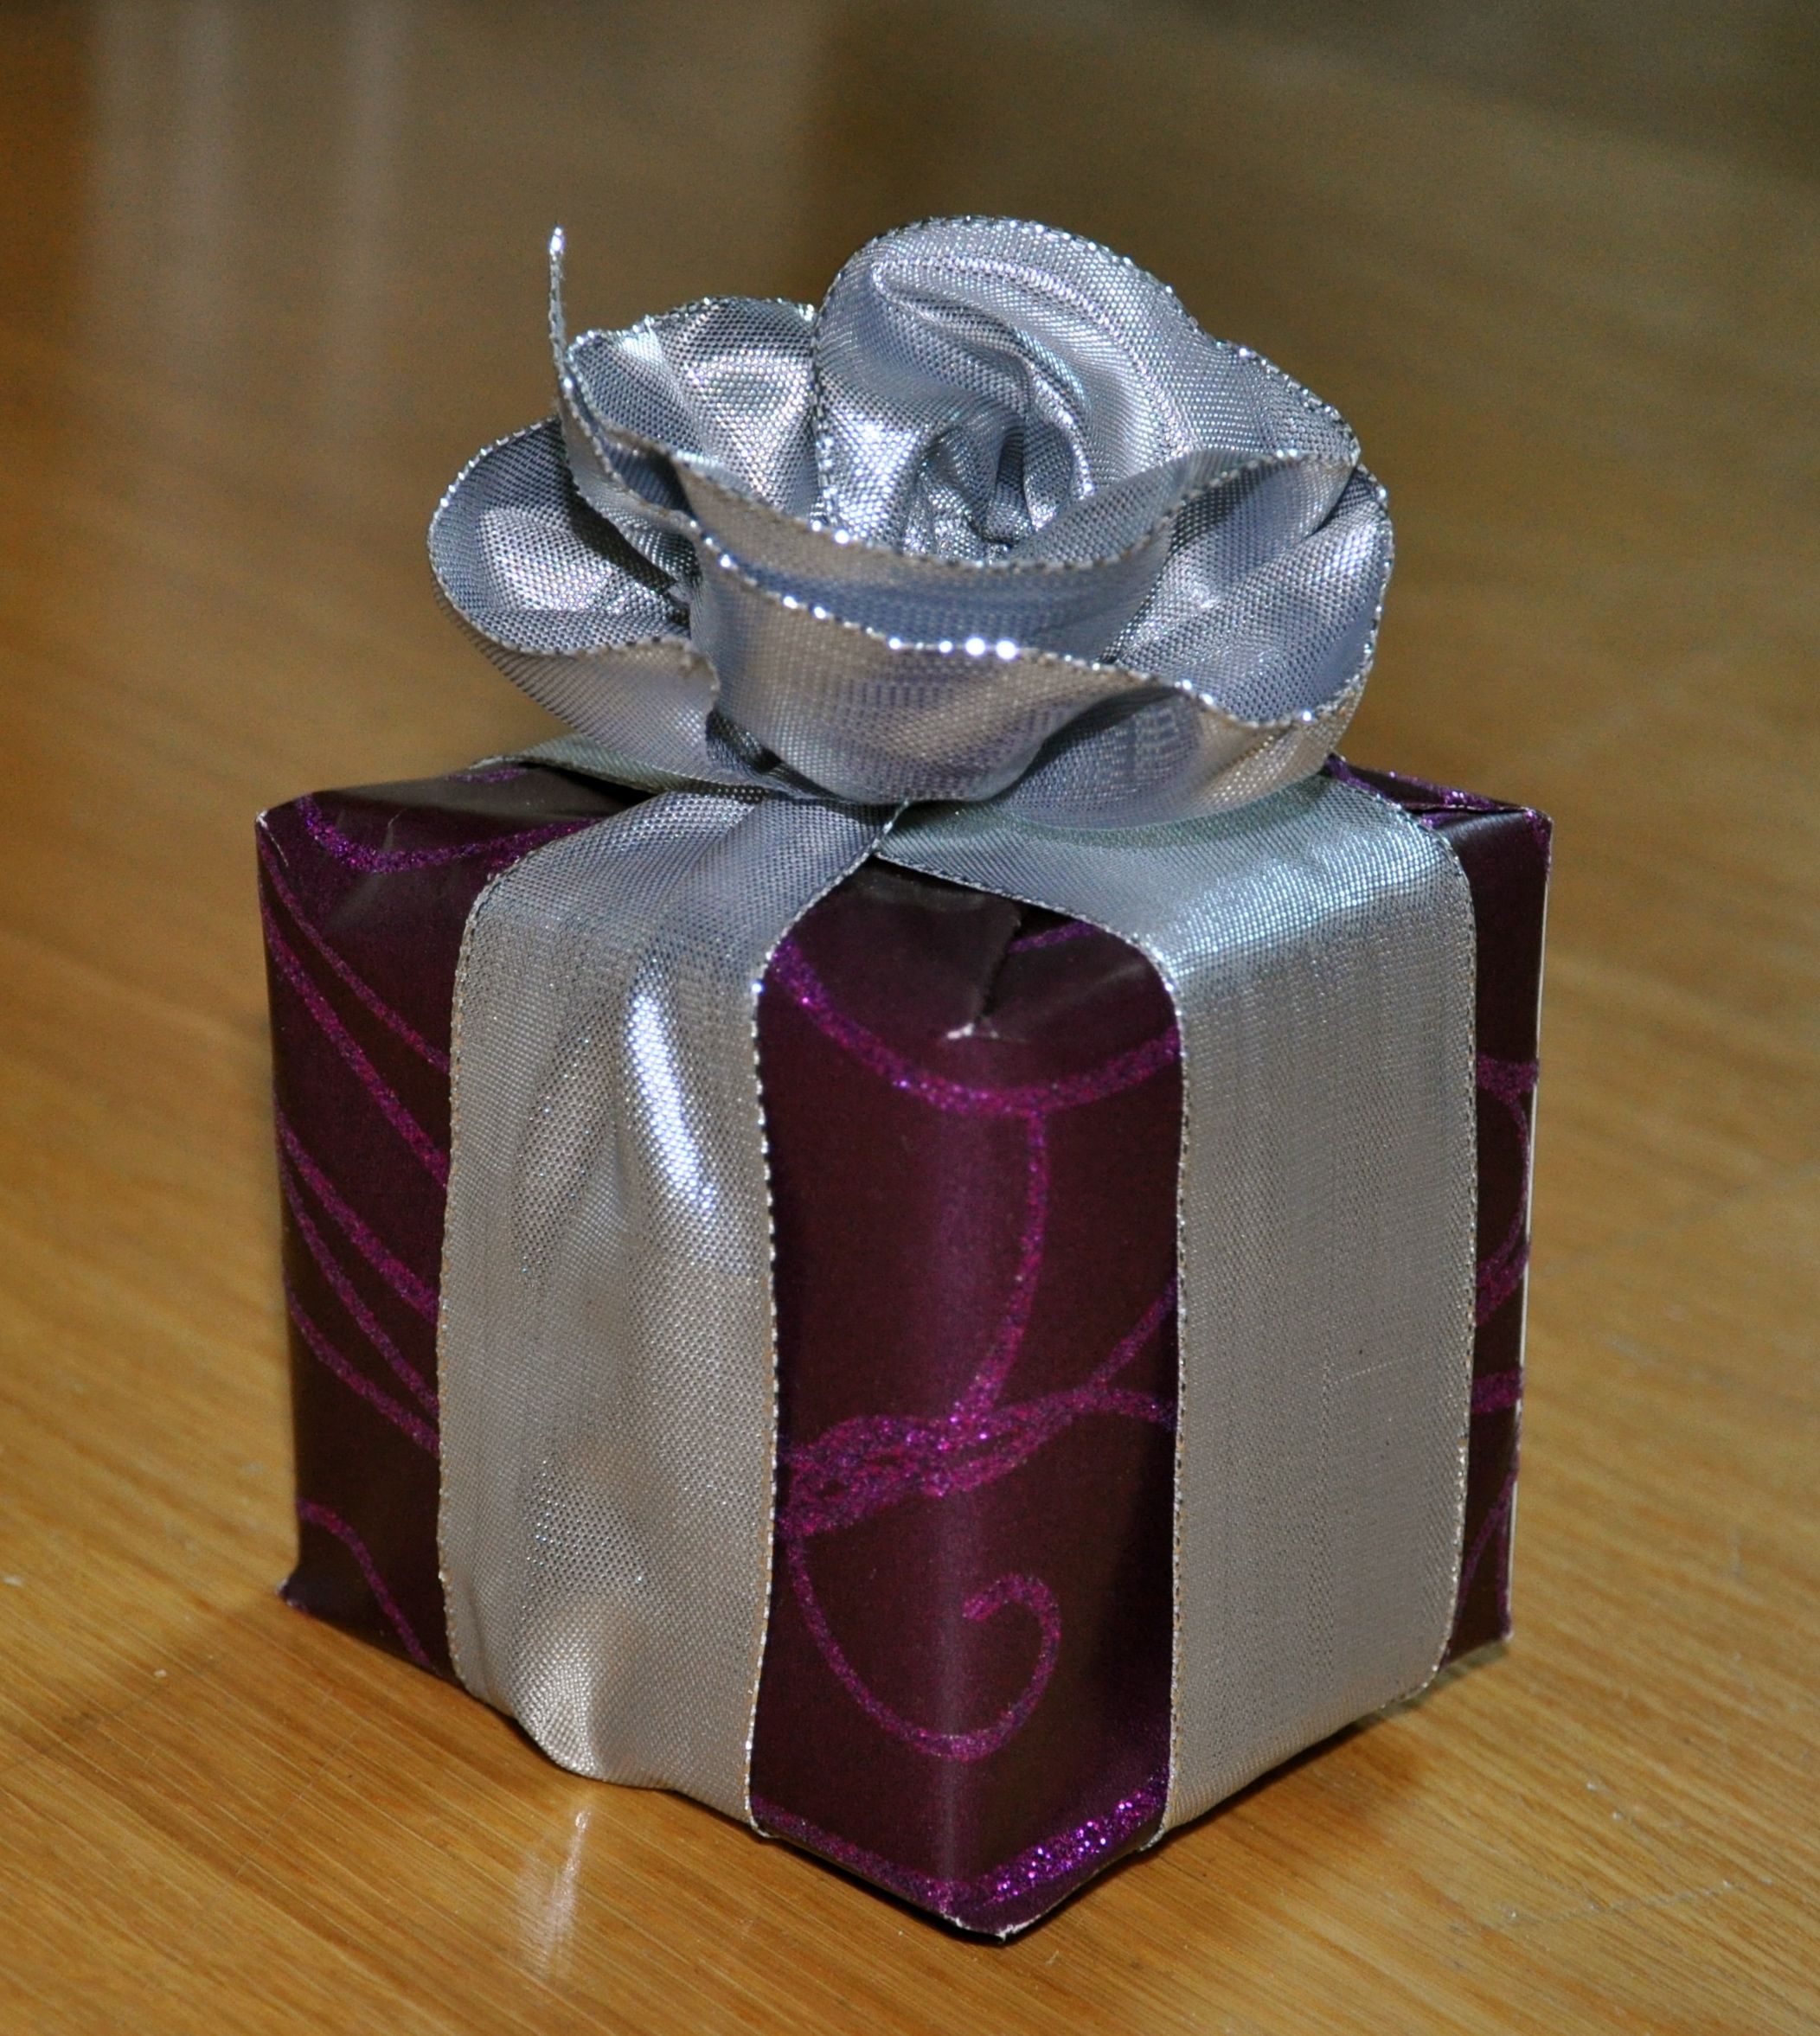 My own creation of a silver rose